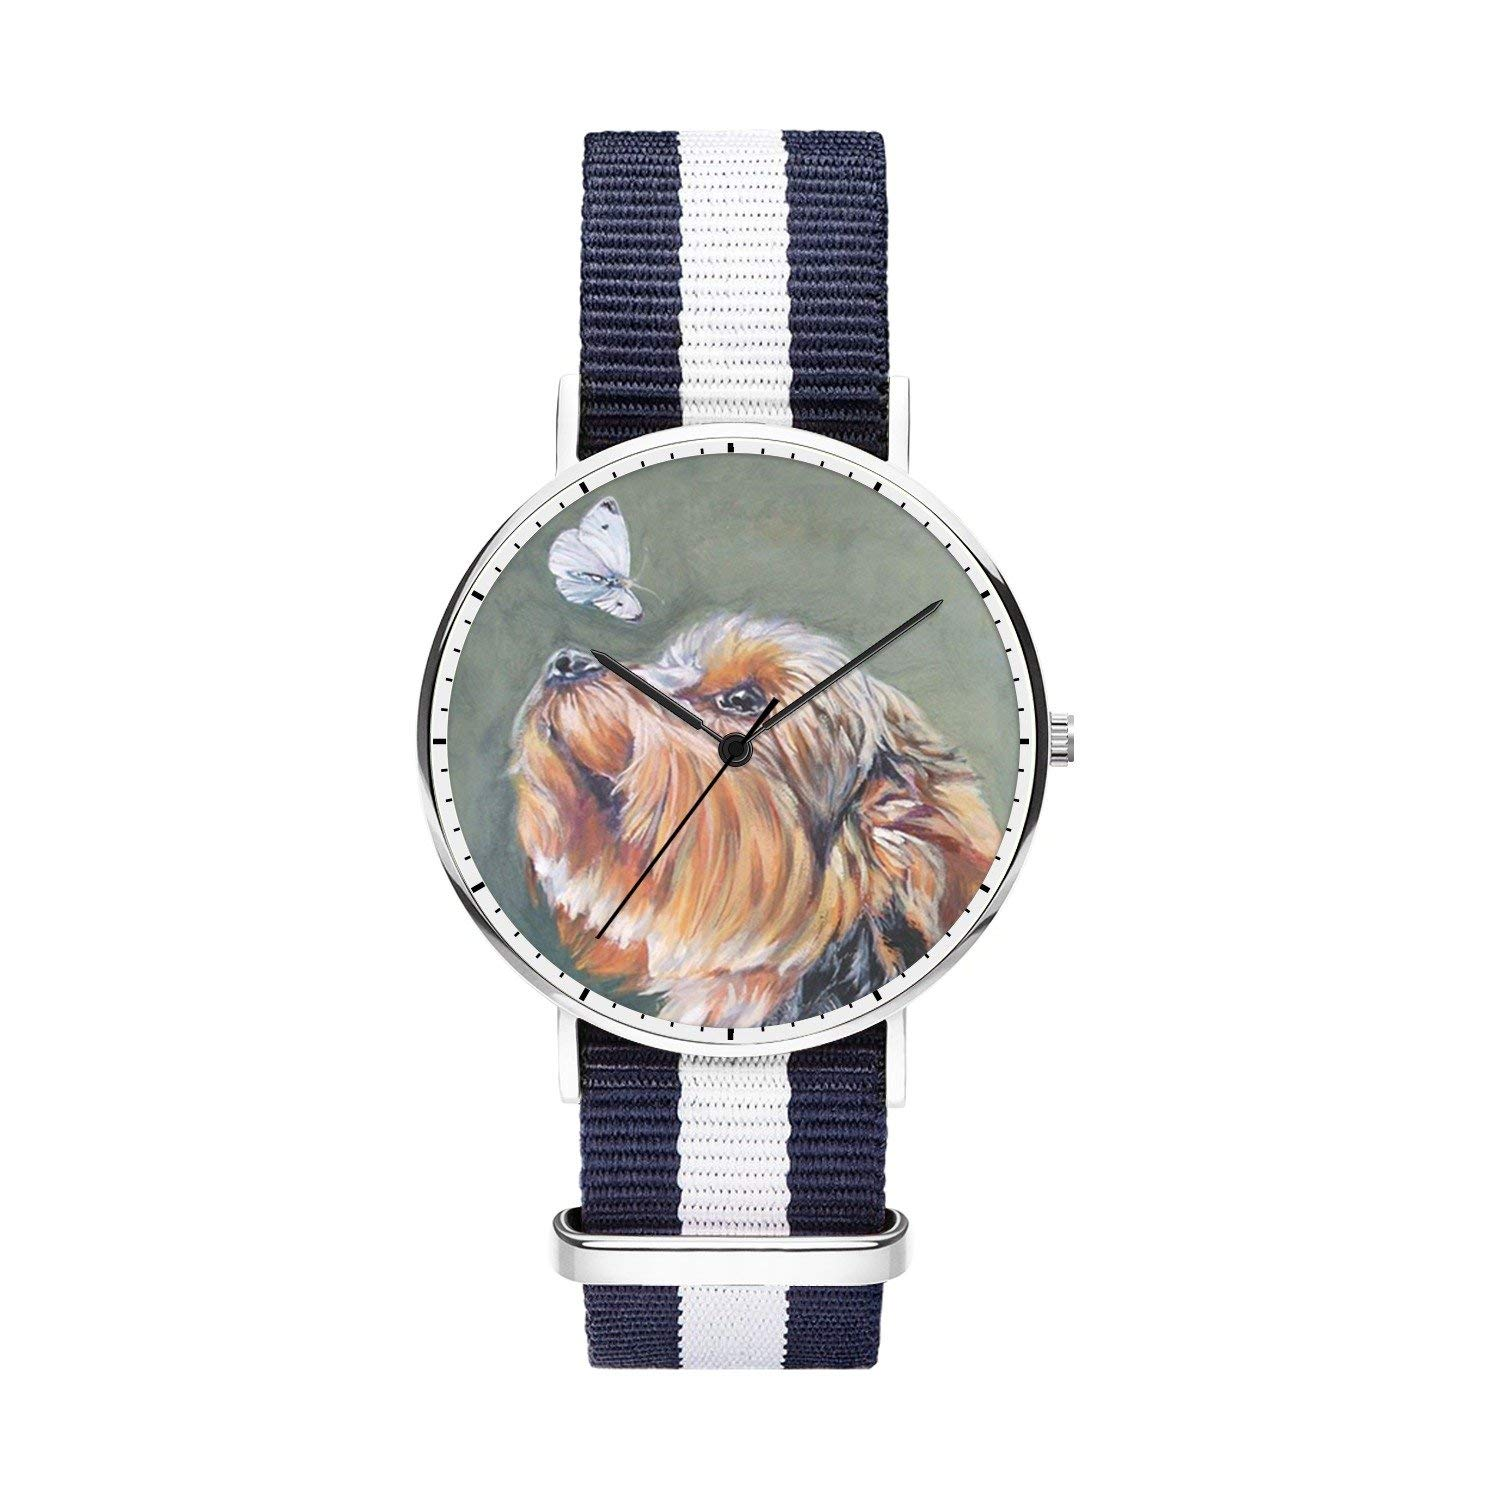 FELOOWSE Girls Watches, Women Watches, Sliver Slim Minimalist Imported Japanese Quartz PracticalWaterproof Unique Personalized Youth Fashion Design Cute Watches for Women.- Gold